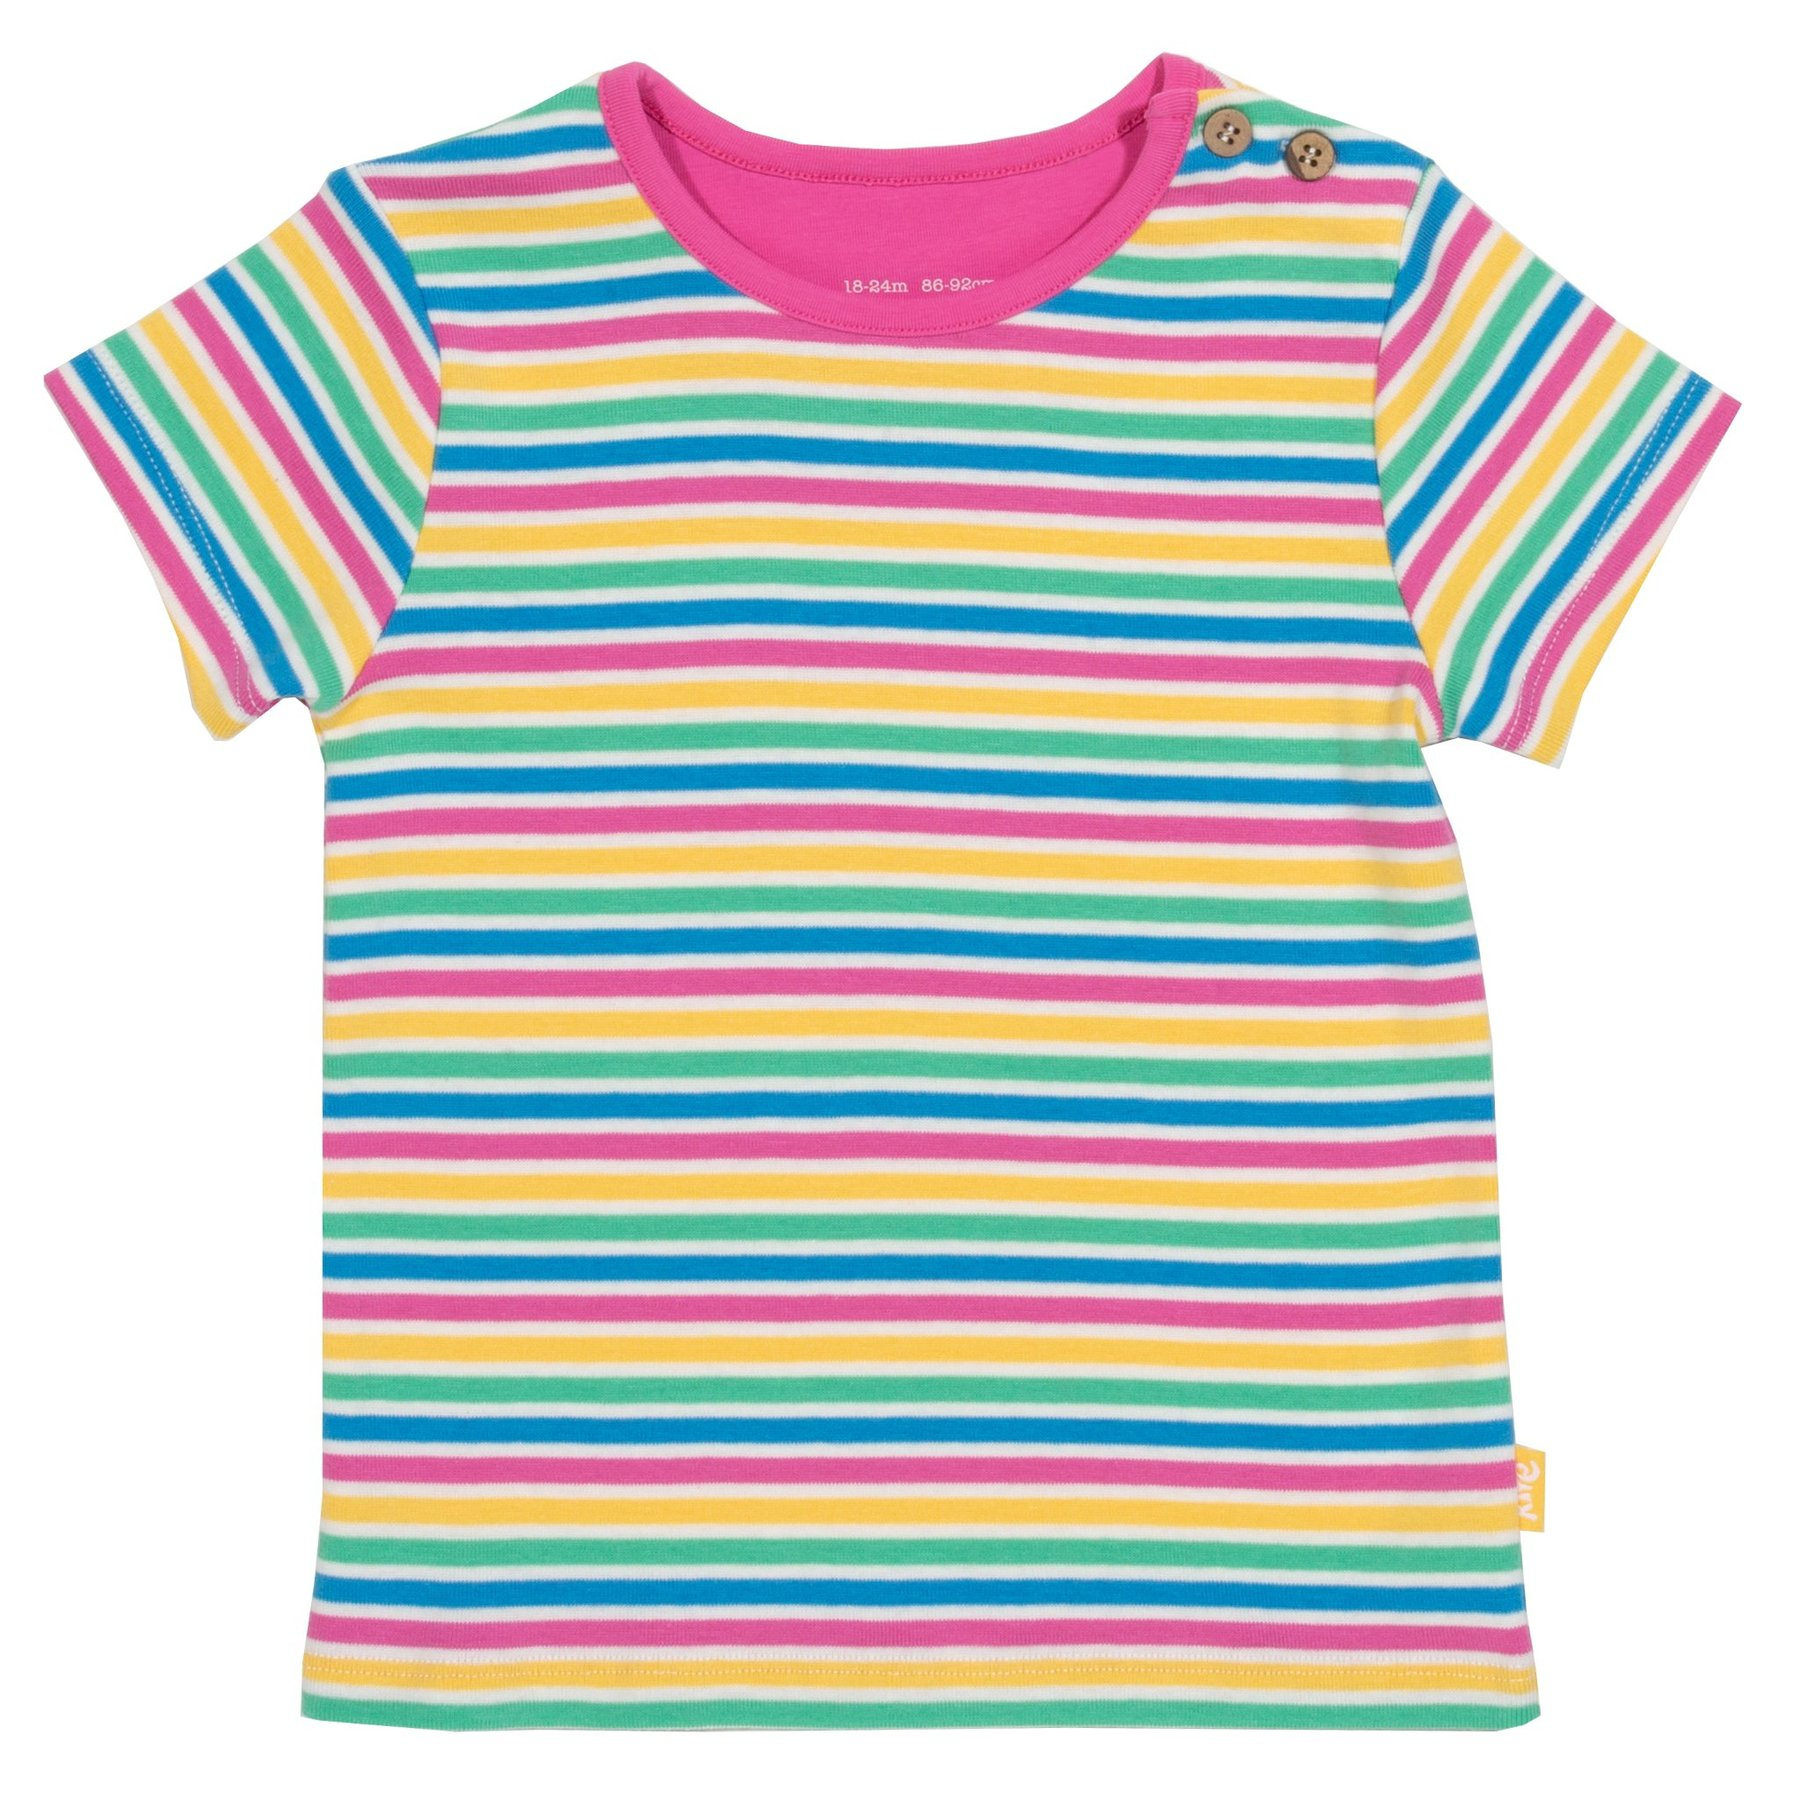 Kite Mini Bright Stripe T-Shirt